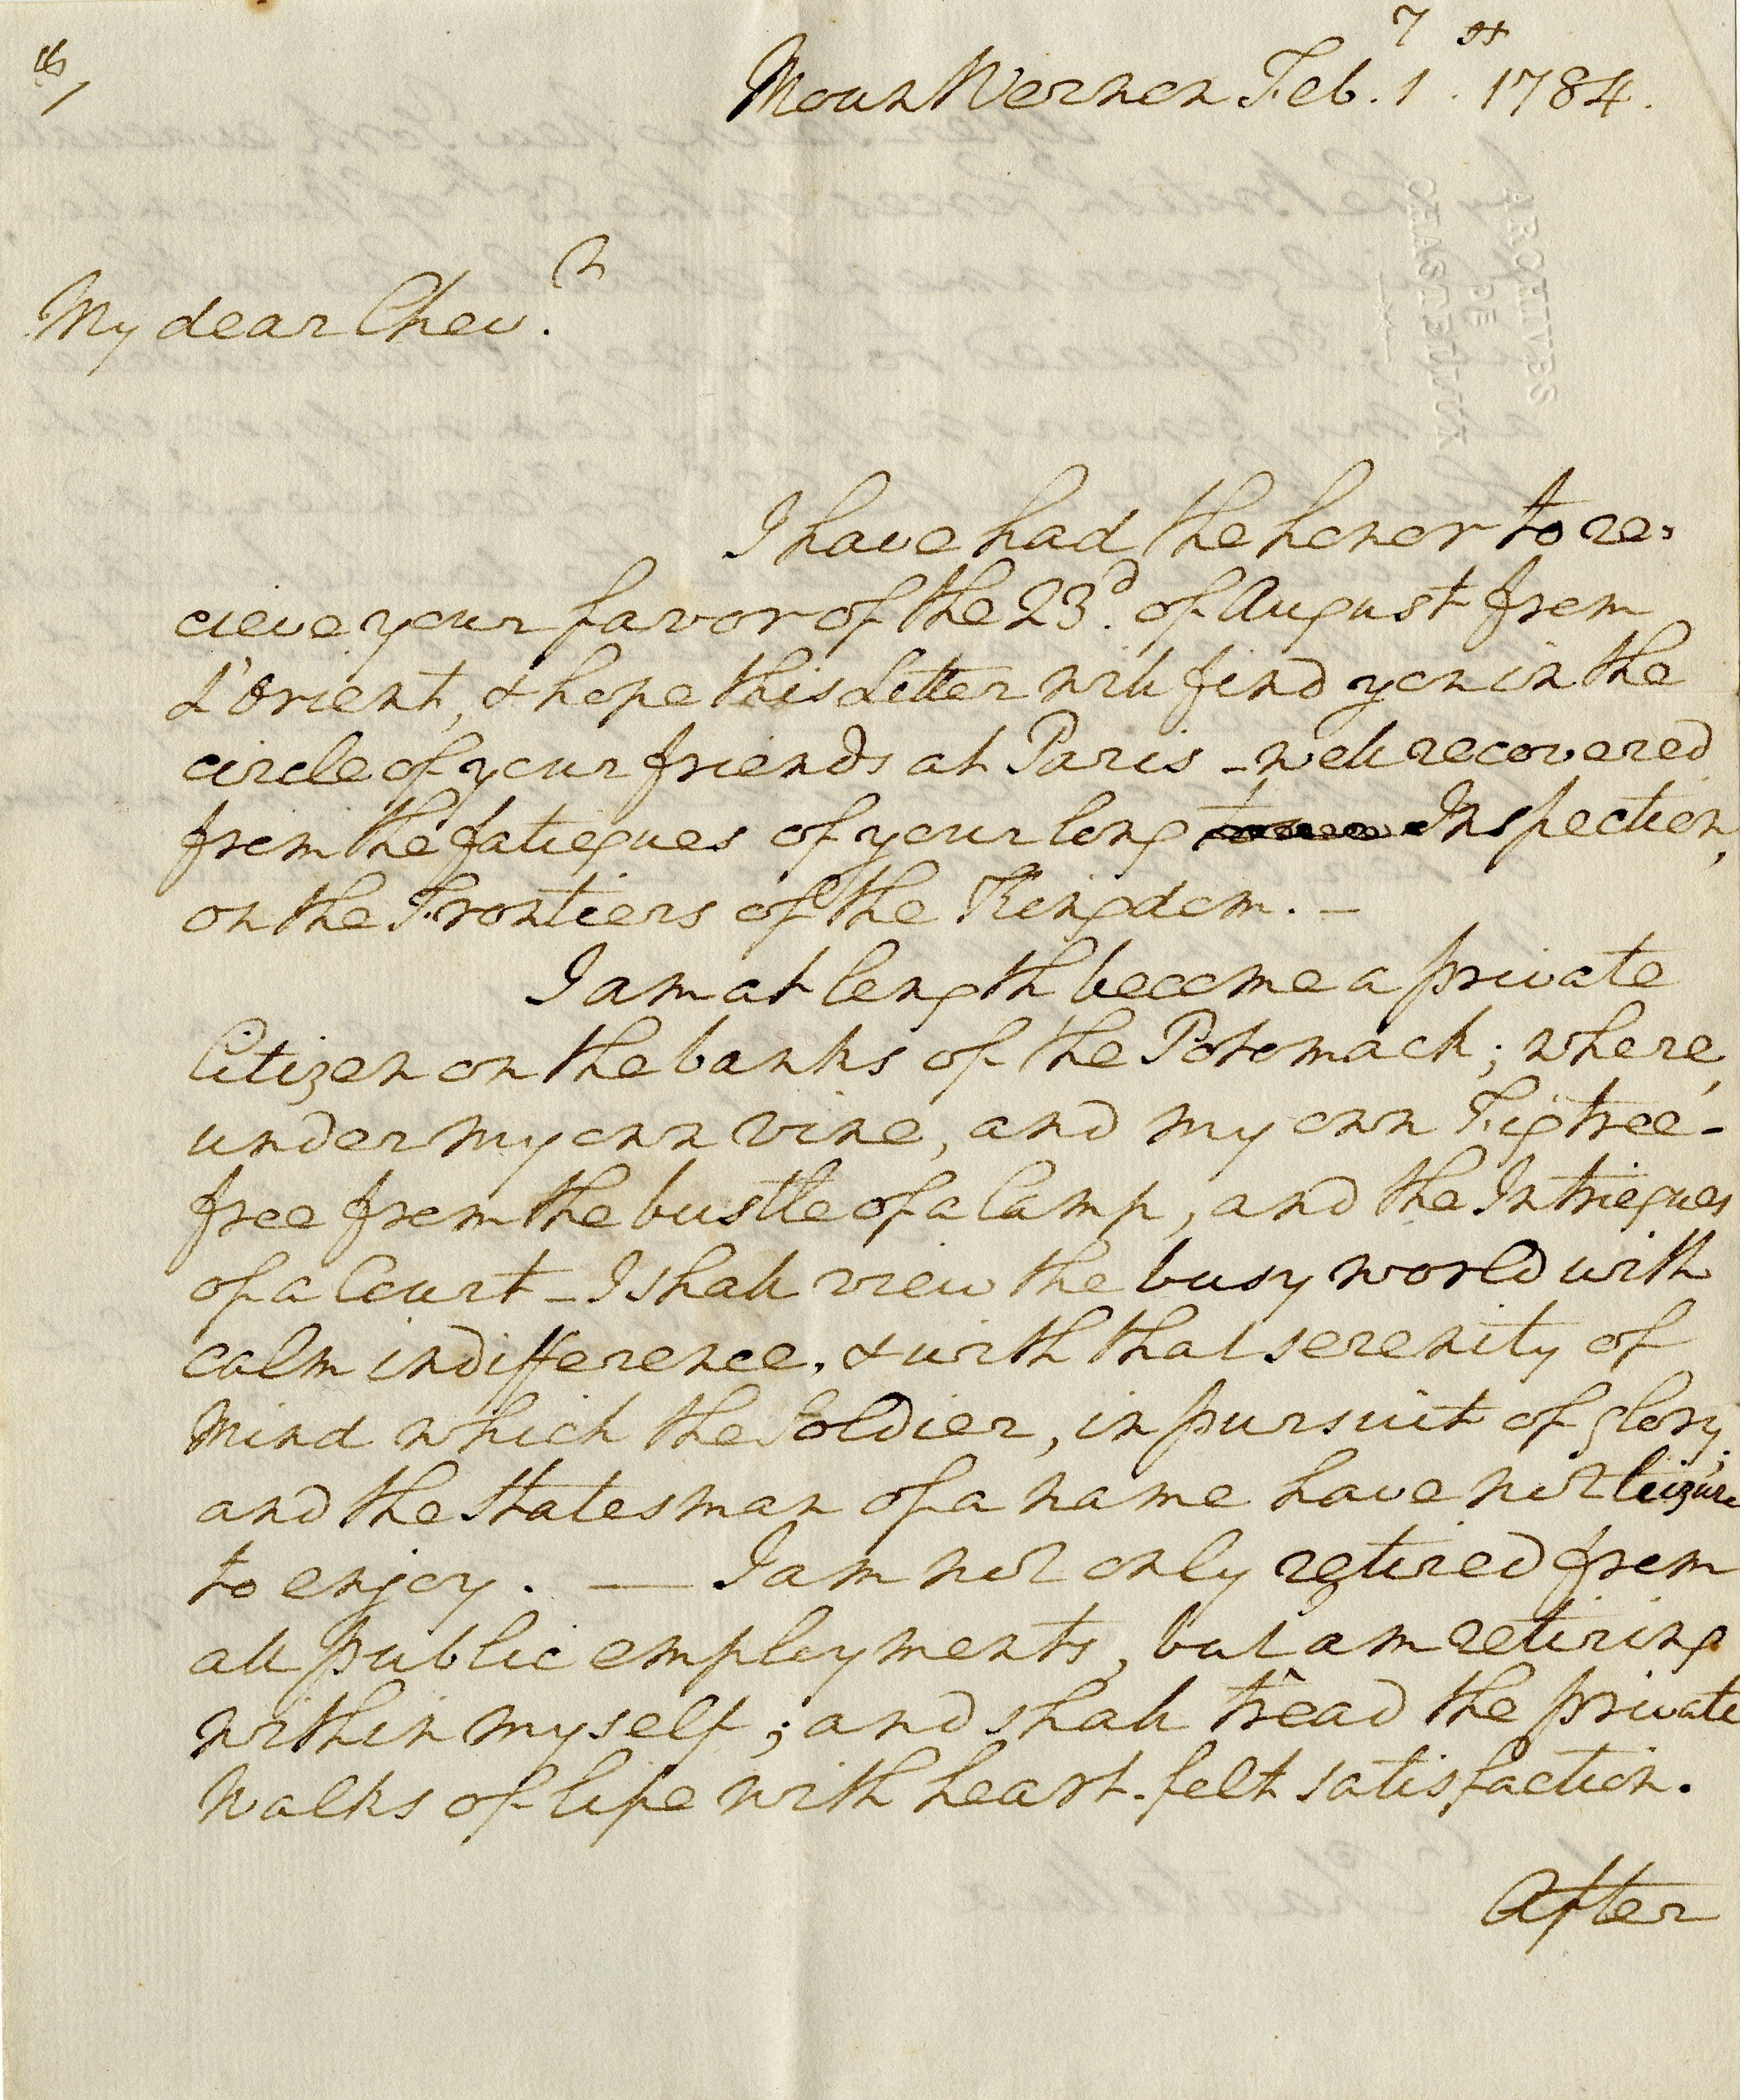 Letter written by George Washington to Chastellux, 1 February 1784. Washington Library at Mount Vernon. Courtesy of Ann and Hugh Scott III.